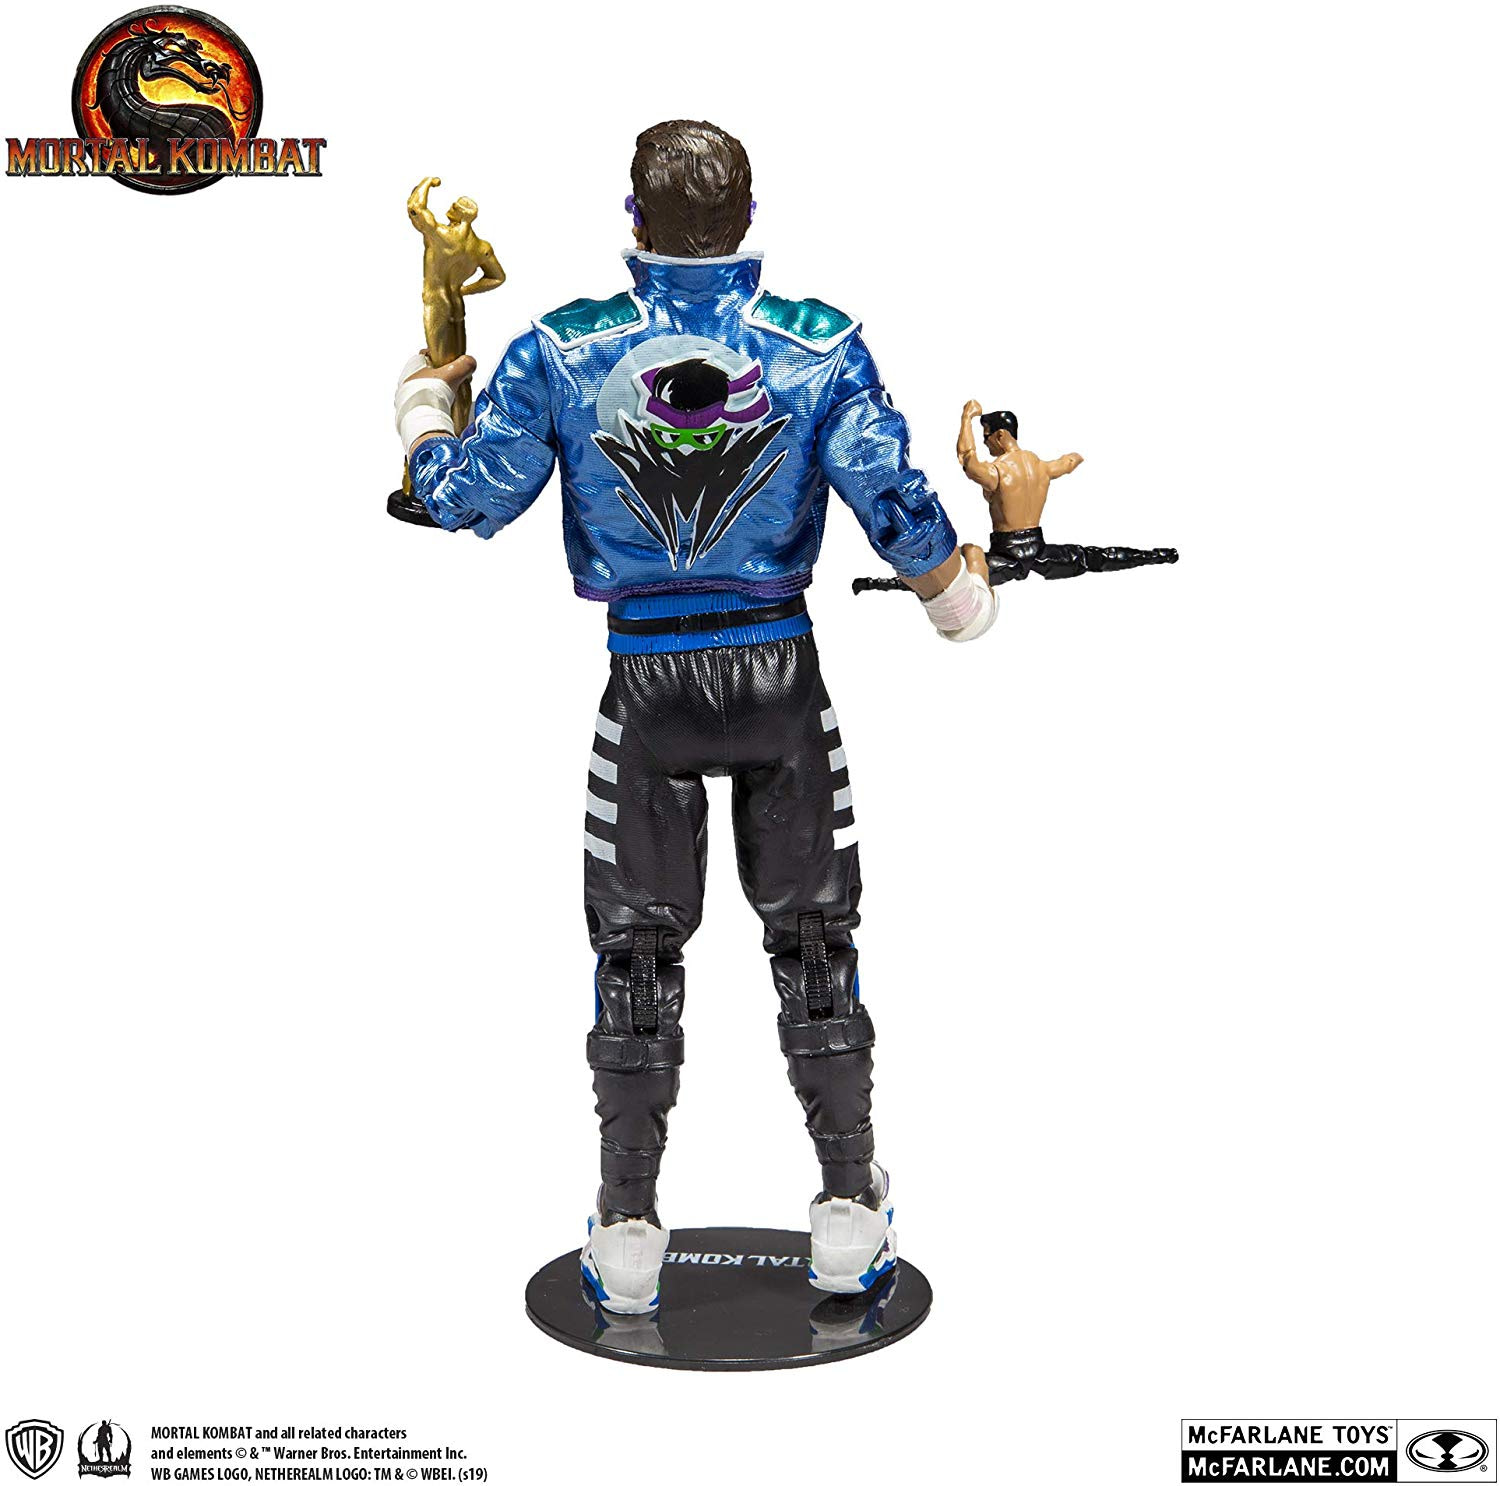 Mortal Kombat XI Gets Two New Figures from McFarlane Toys